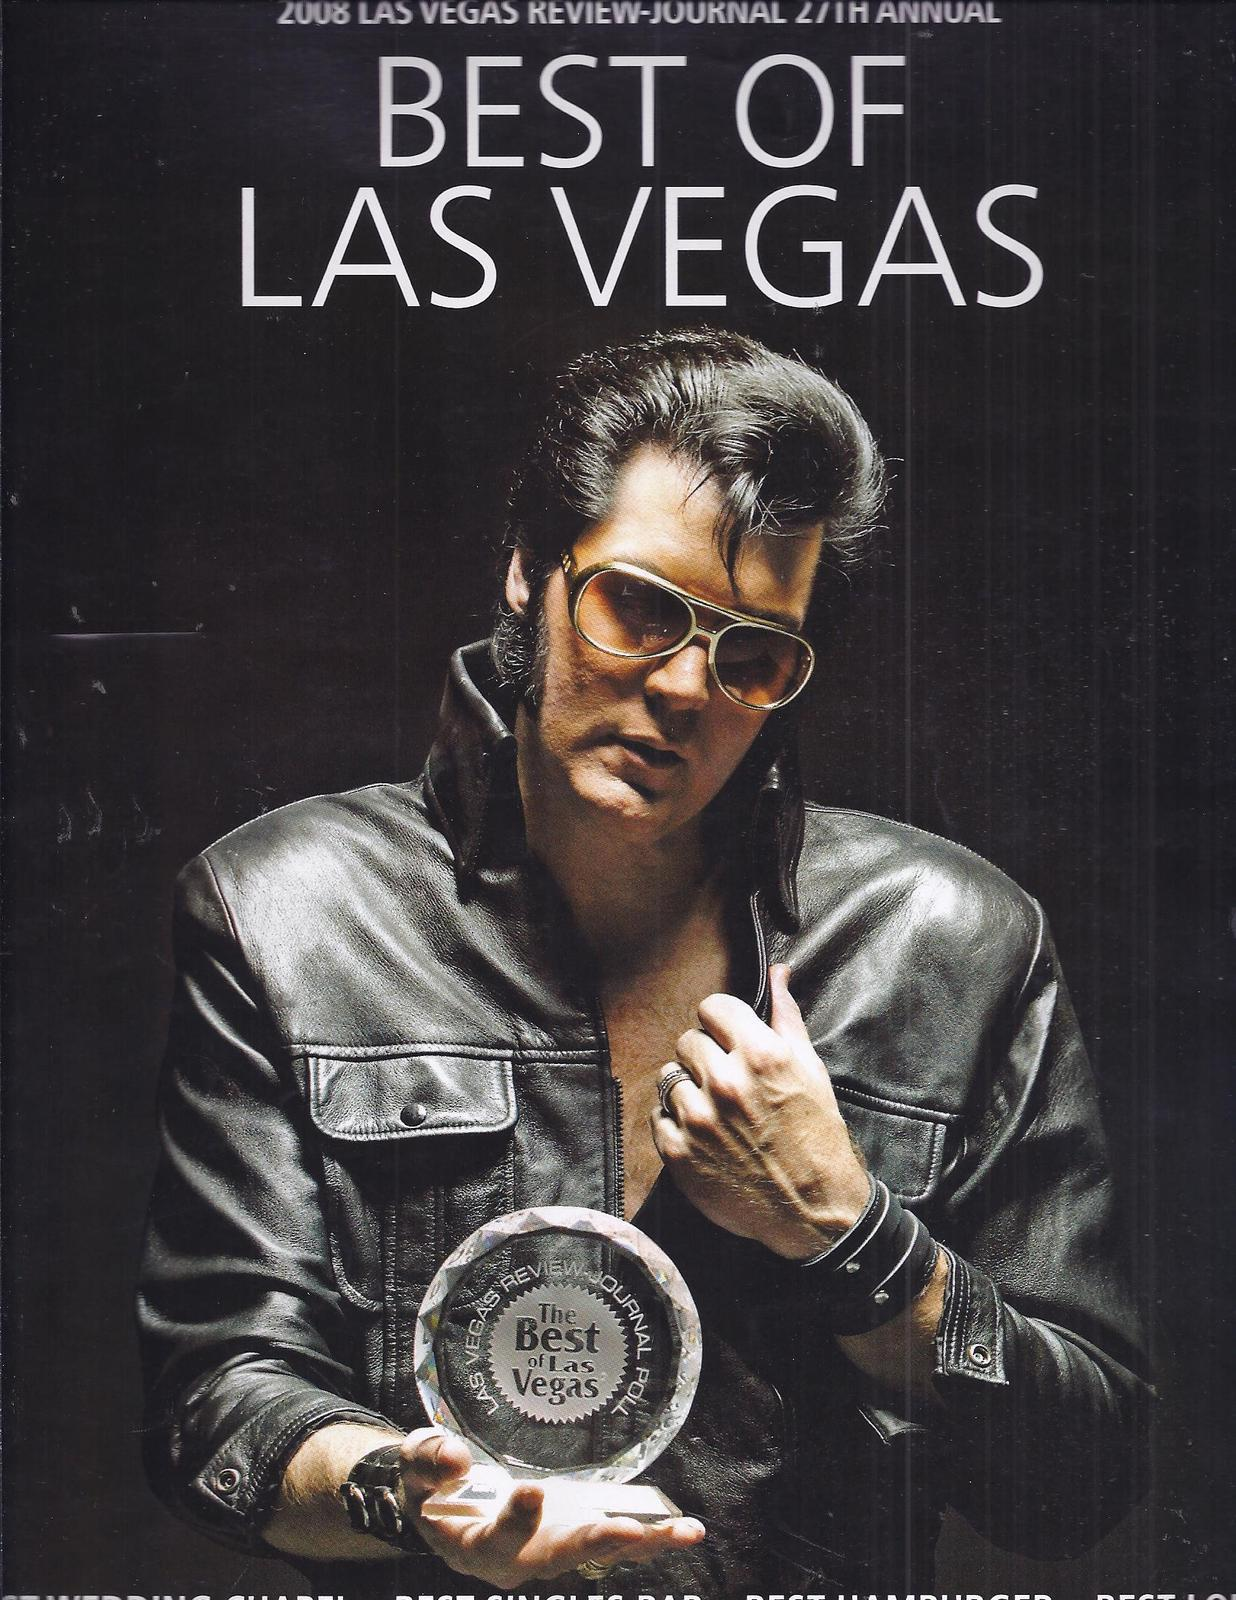 Primary image for 2008 Review Journal 27th Annual Magazine: The BEST OF LAS VEGAS-  Brendan Paul